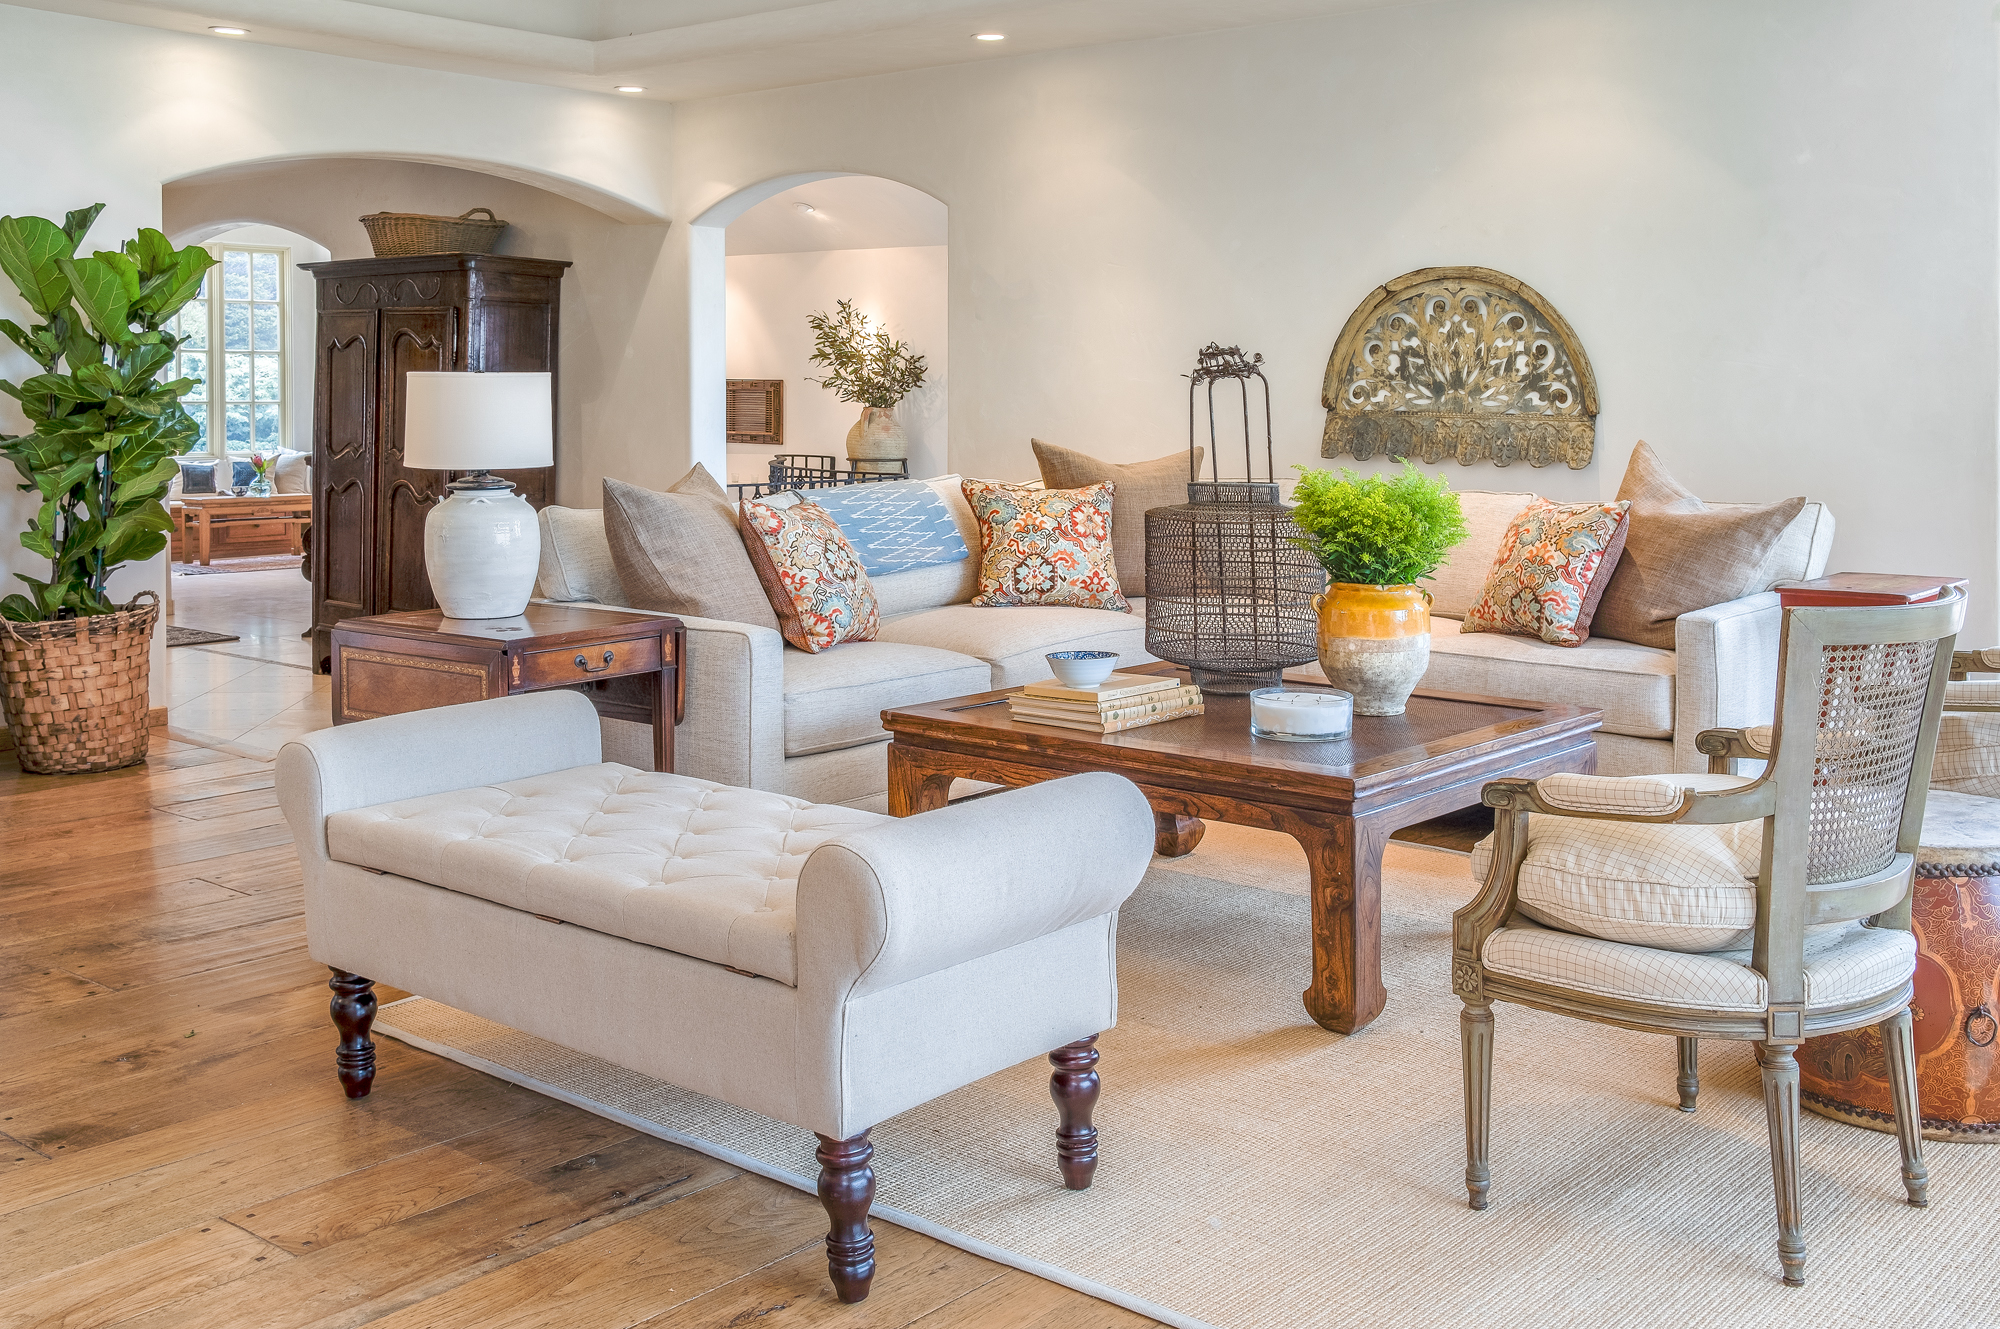 Hart Habitats | San Francisco and Carmel Interior Designer and Stylist | Staging